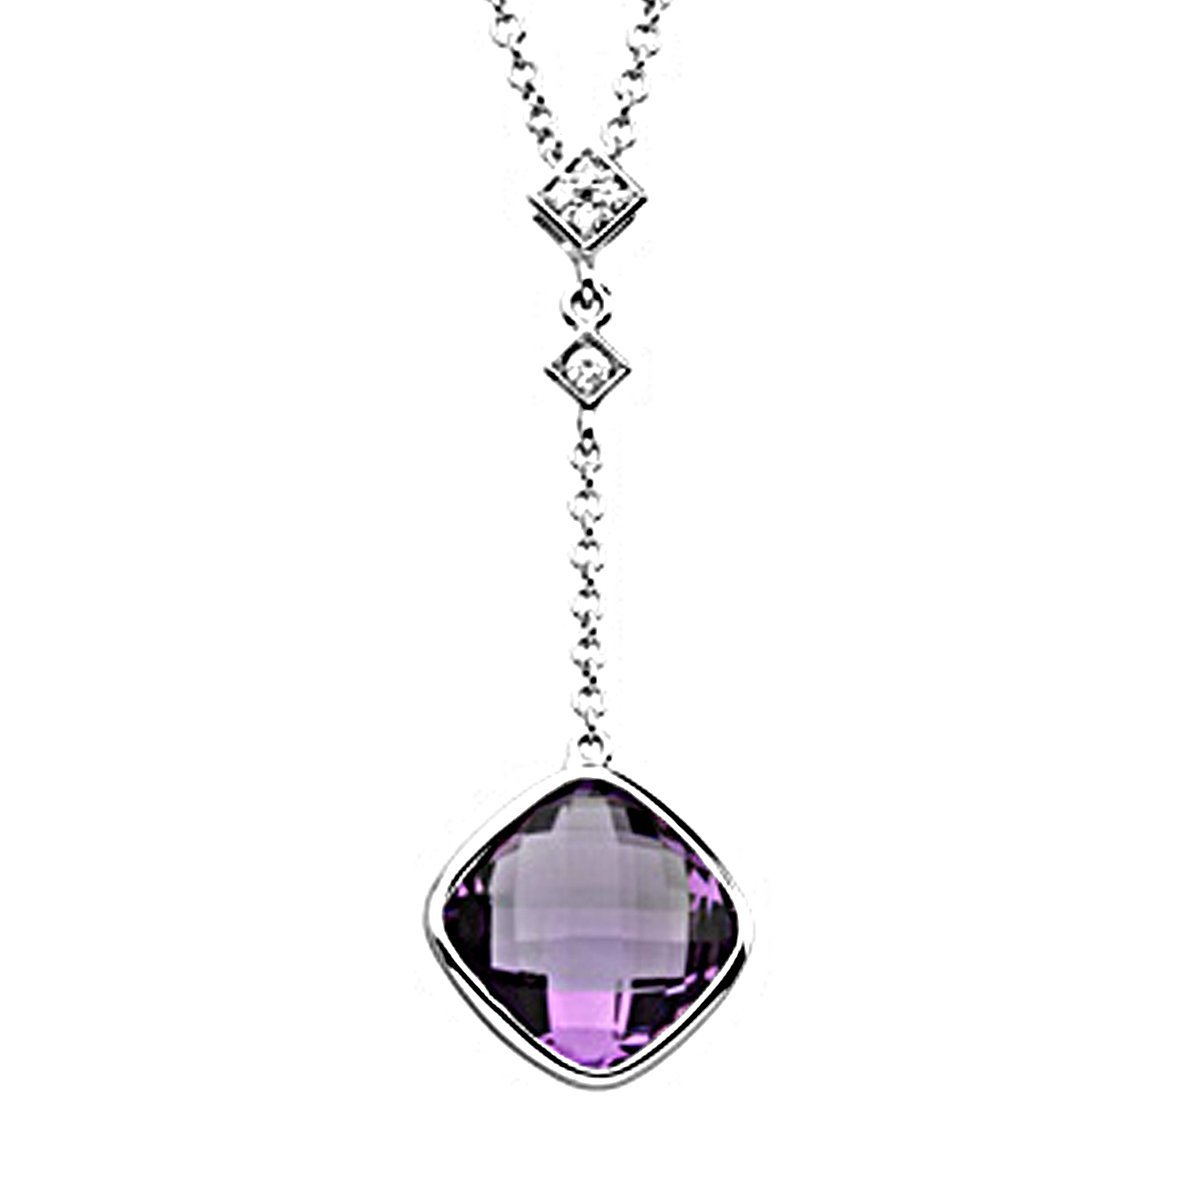 DTJEWELS Cushion /& Round 3.75 Ctw Amethyst /& Sim Diamond Pendant Necklace W//18 14K White Gold Plated